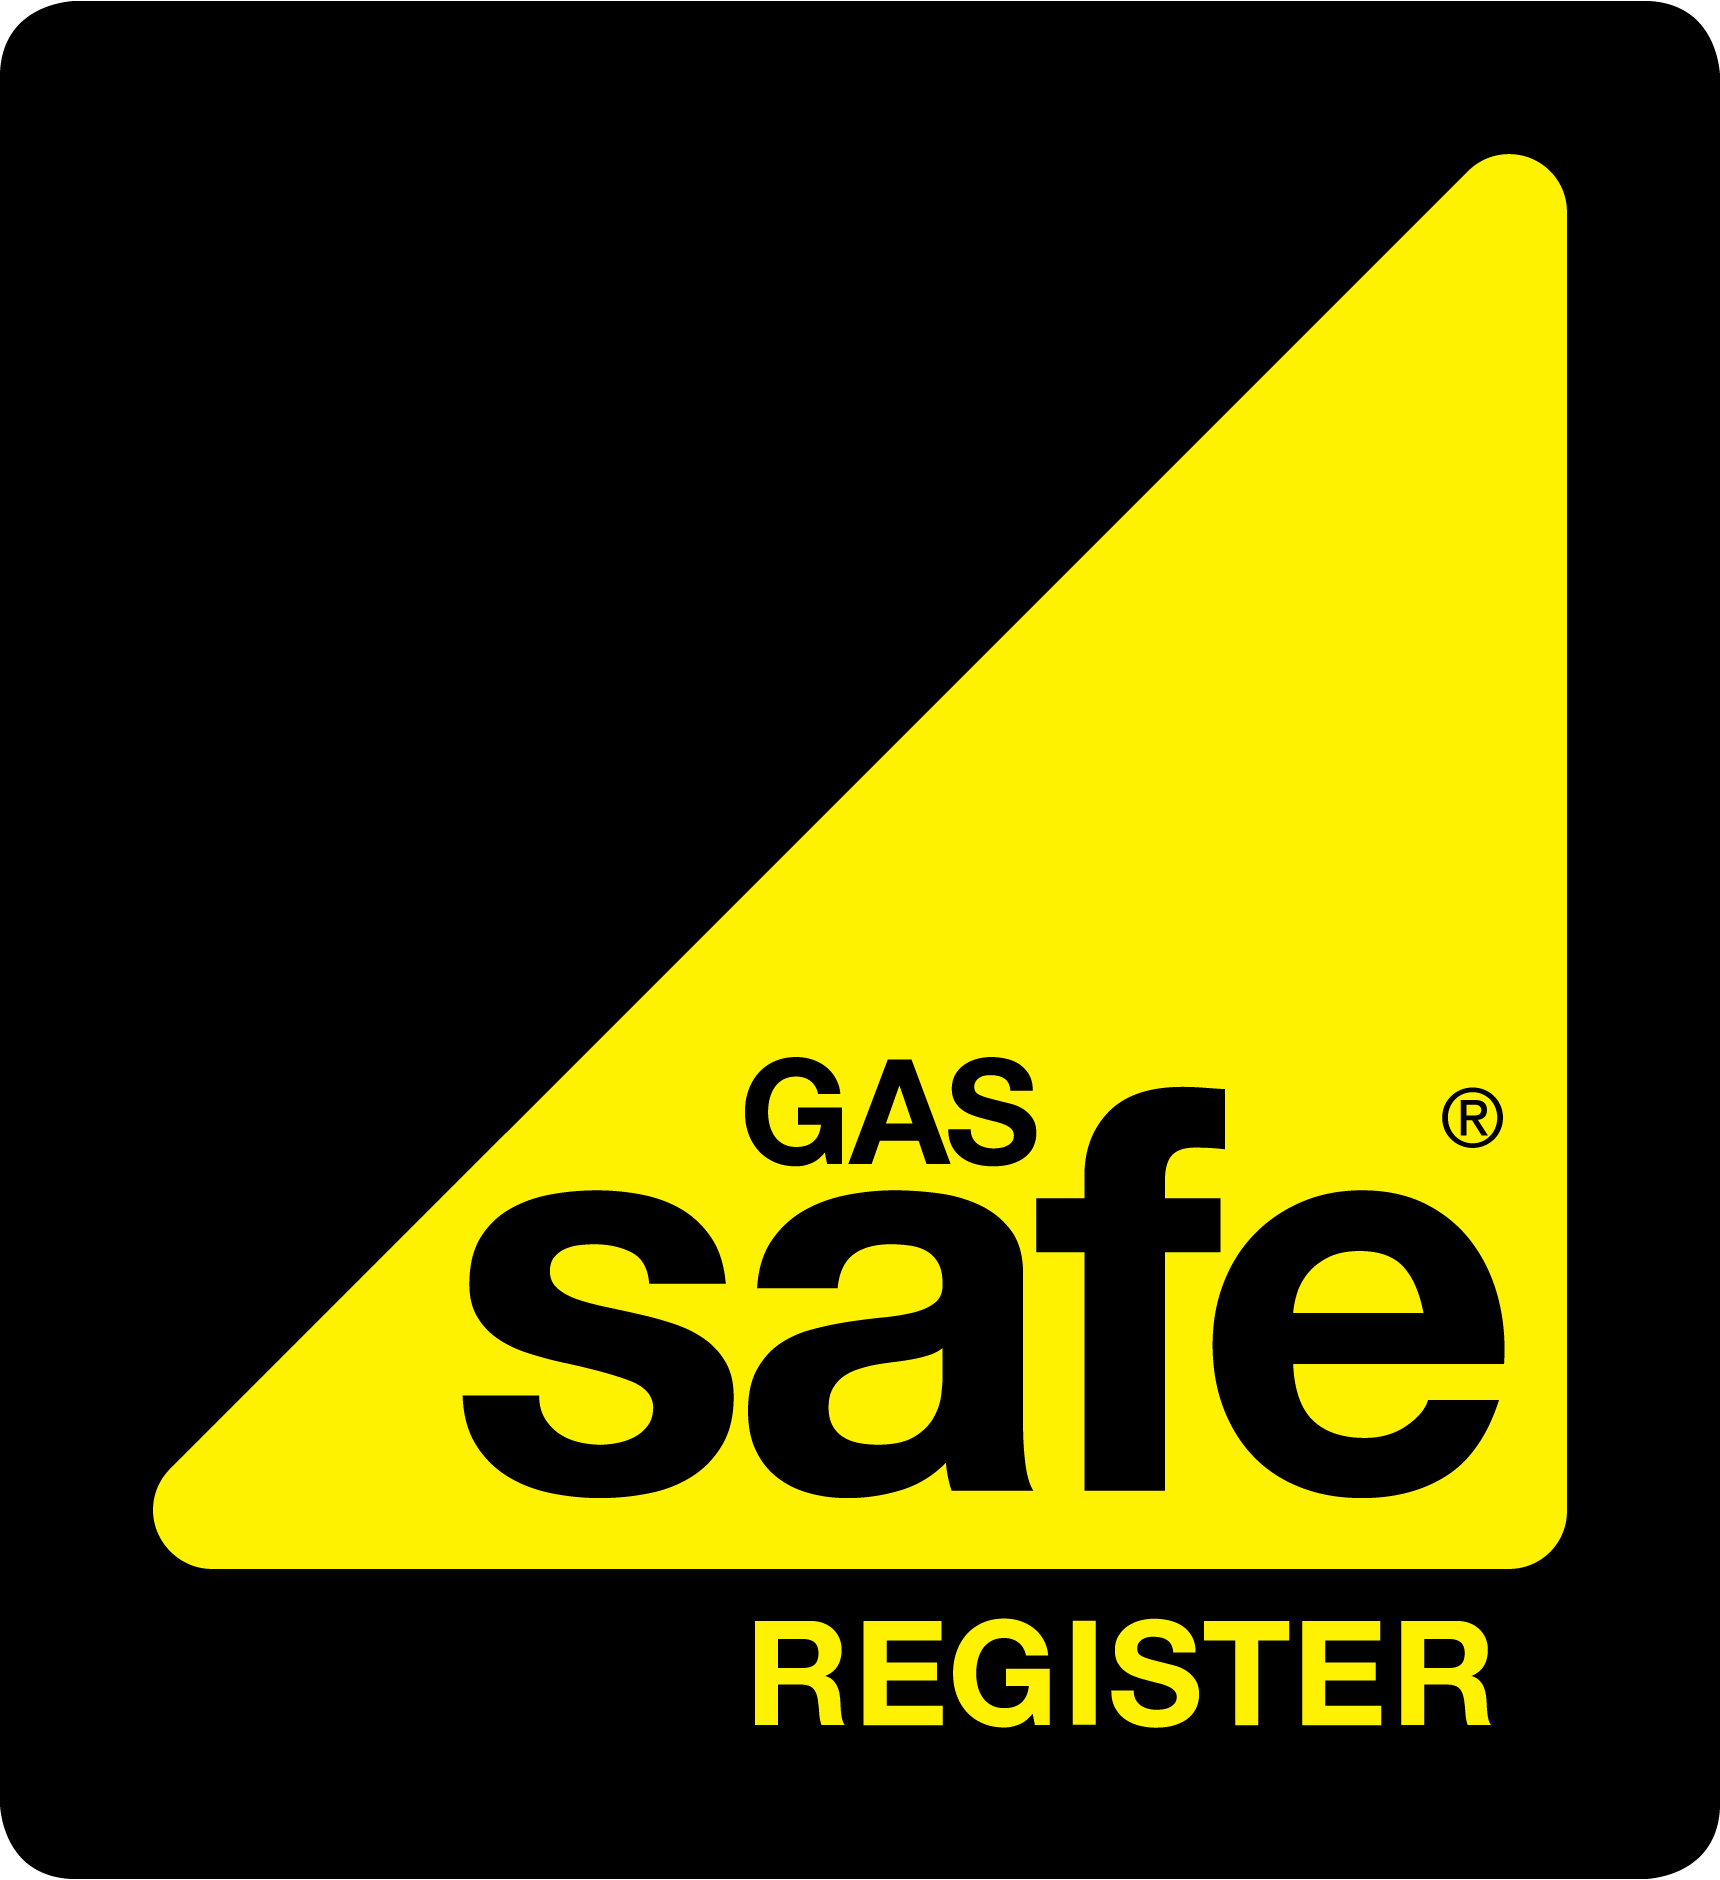 find gas safe registered engineers